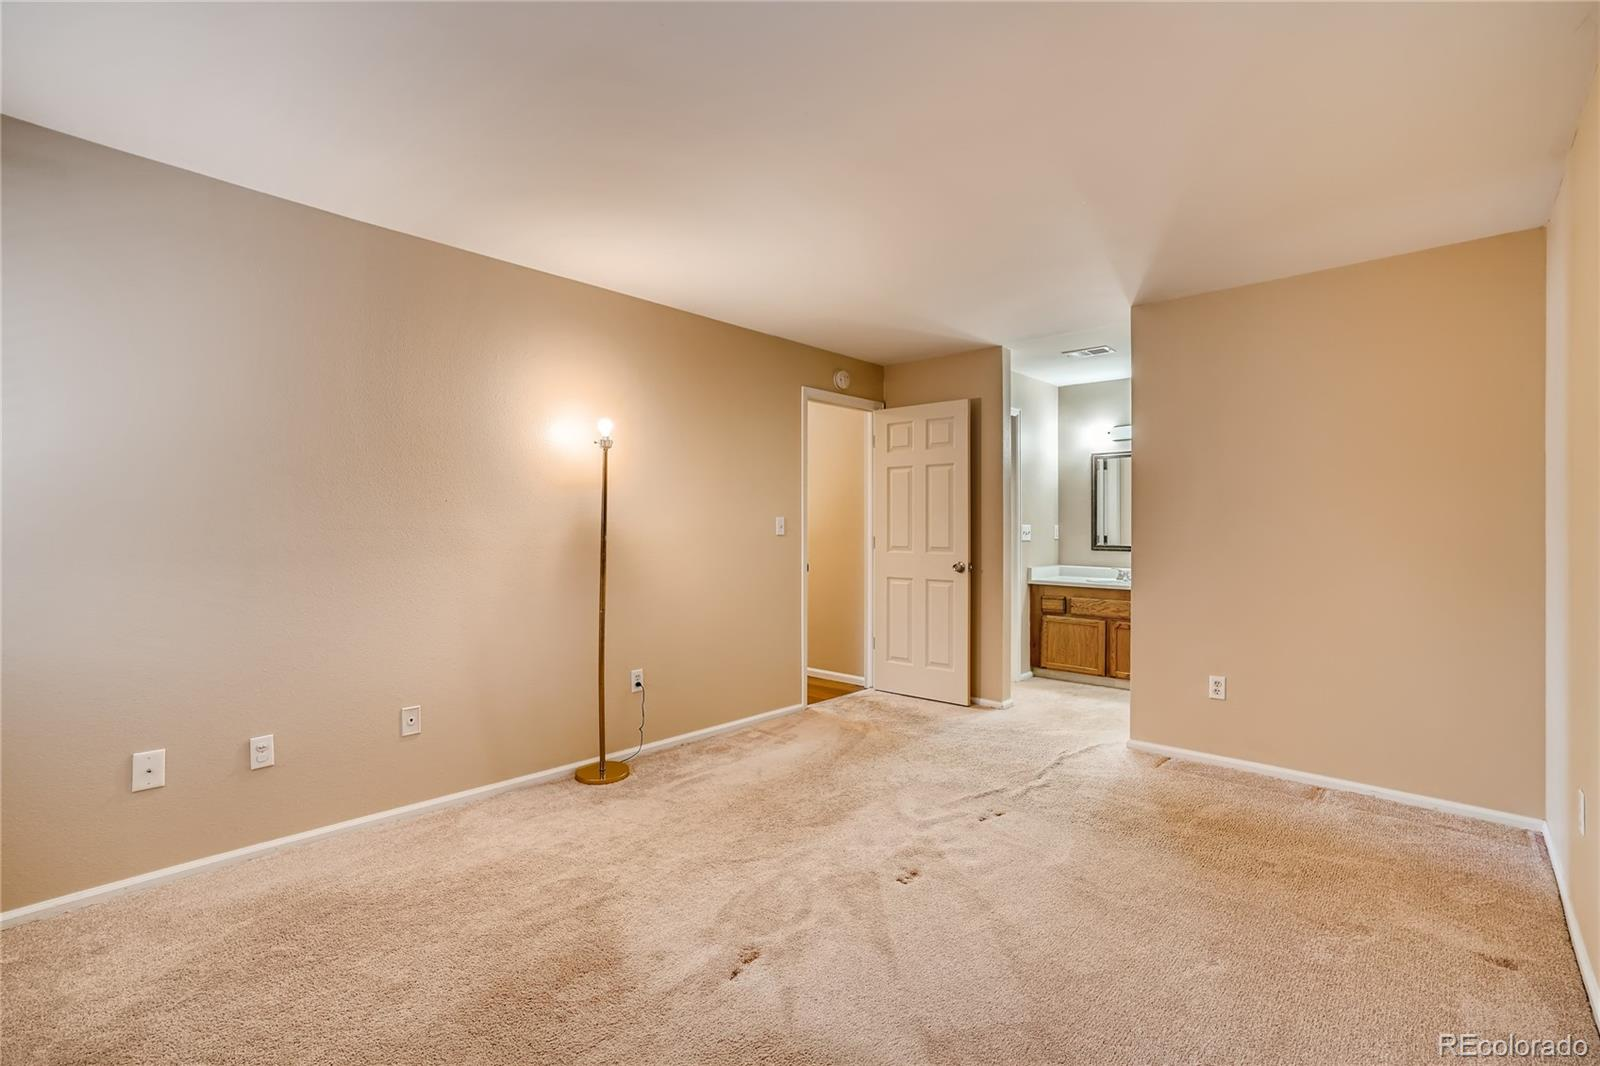 MLS# 6714692 - 16 - 4371 S Andes Way #201, Aurora, CO 80015